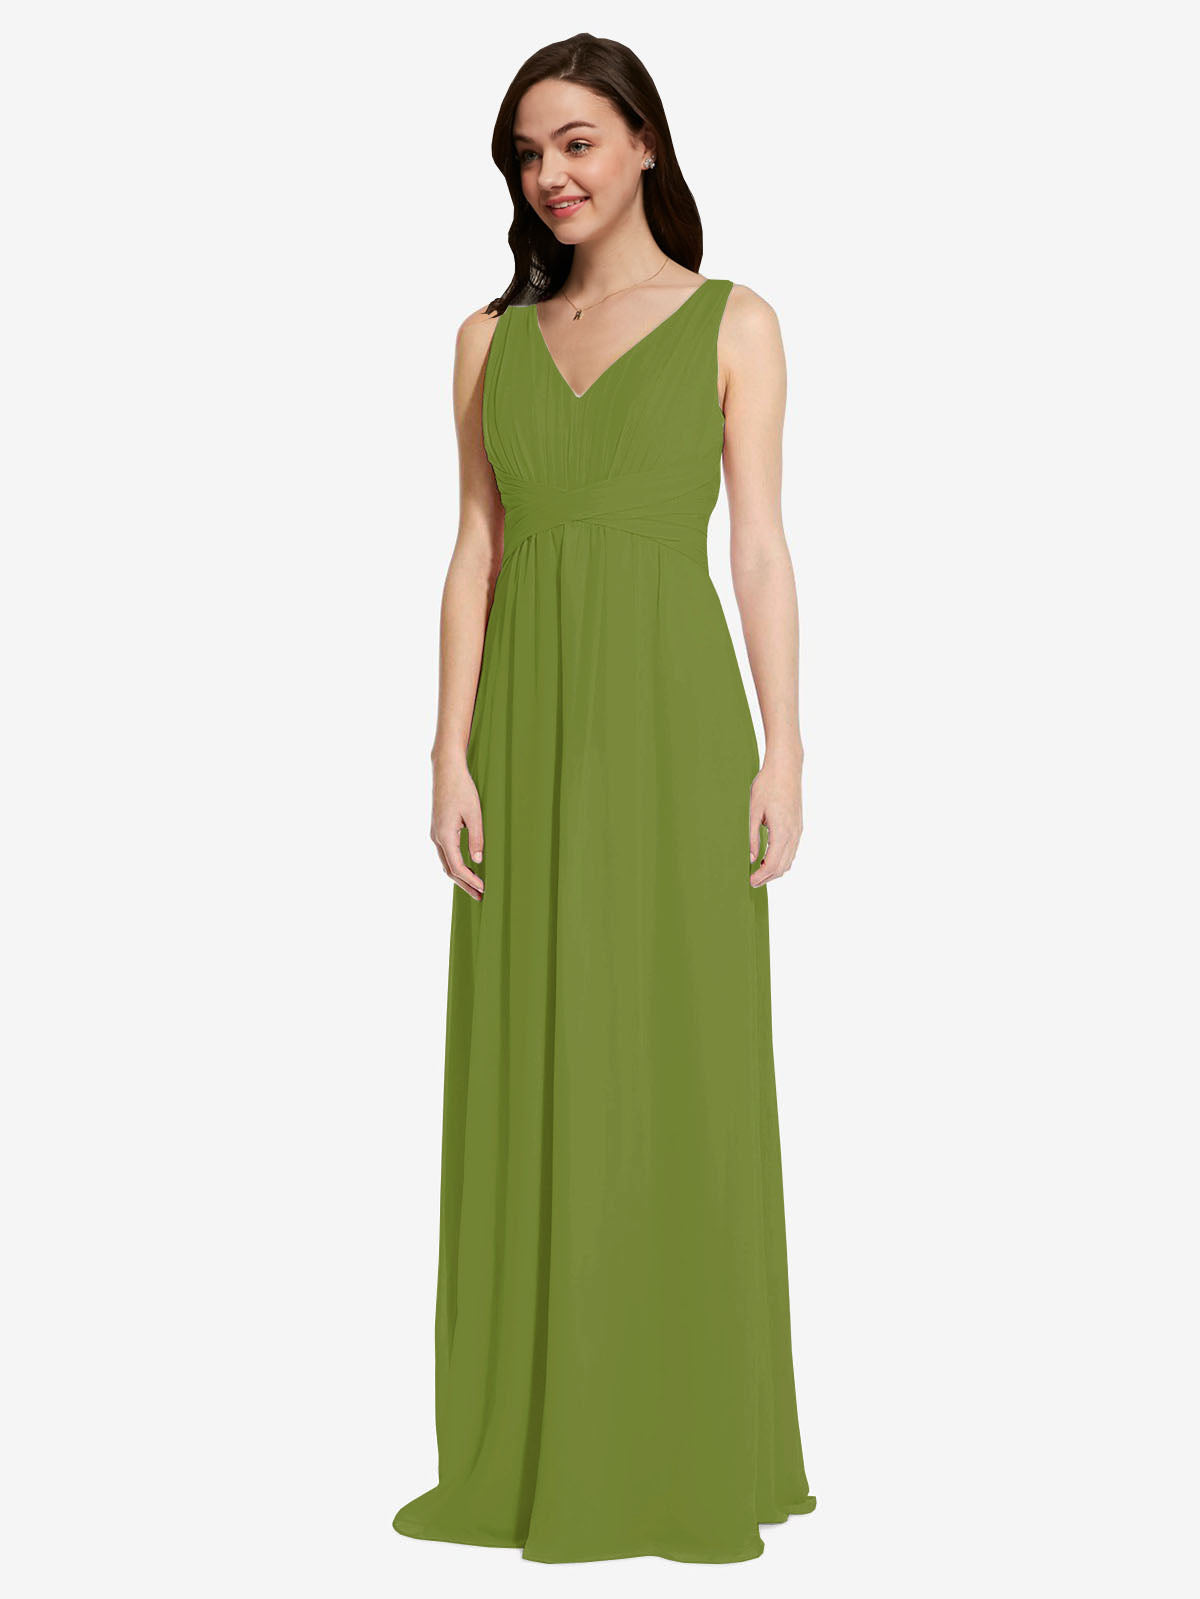 Long A-Line V-Neck Sleeveless Olive Green Chiffon Bridesmaid Dress Auckland